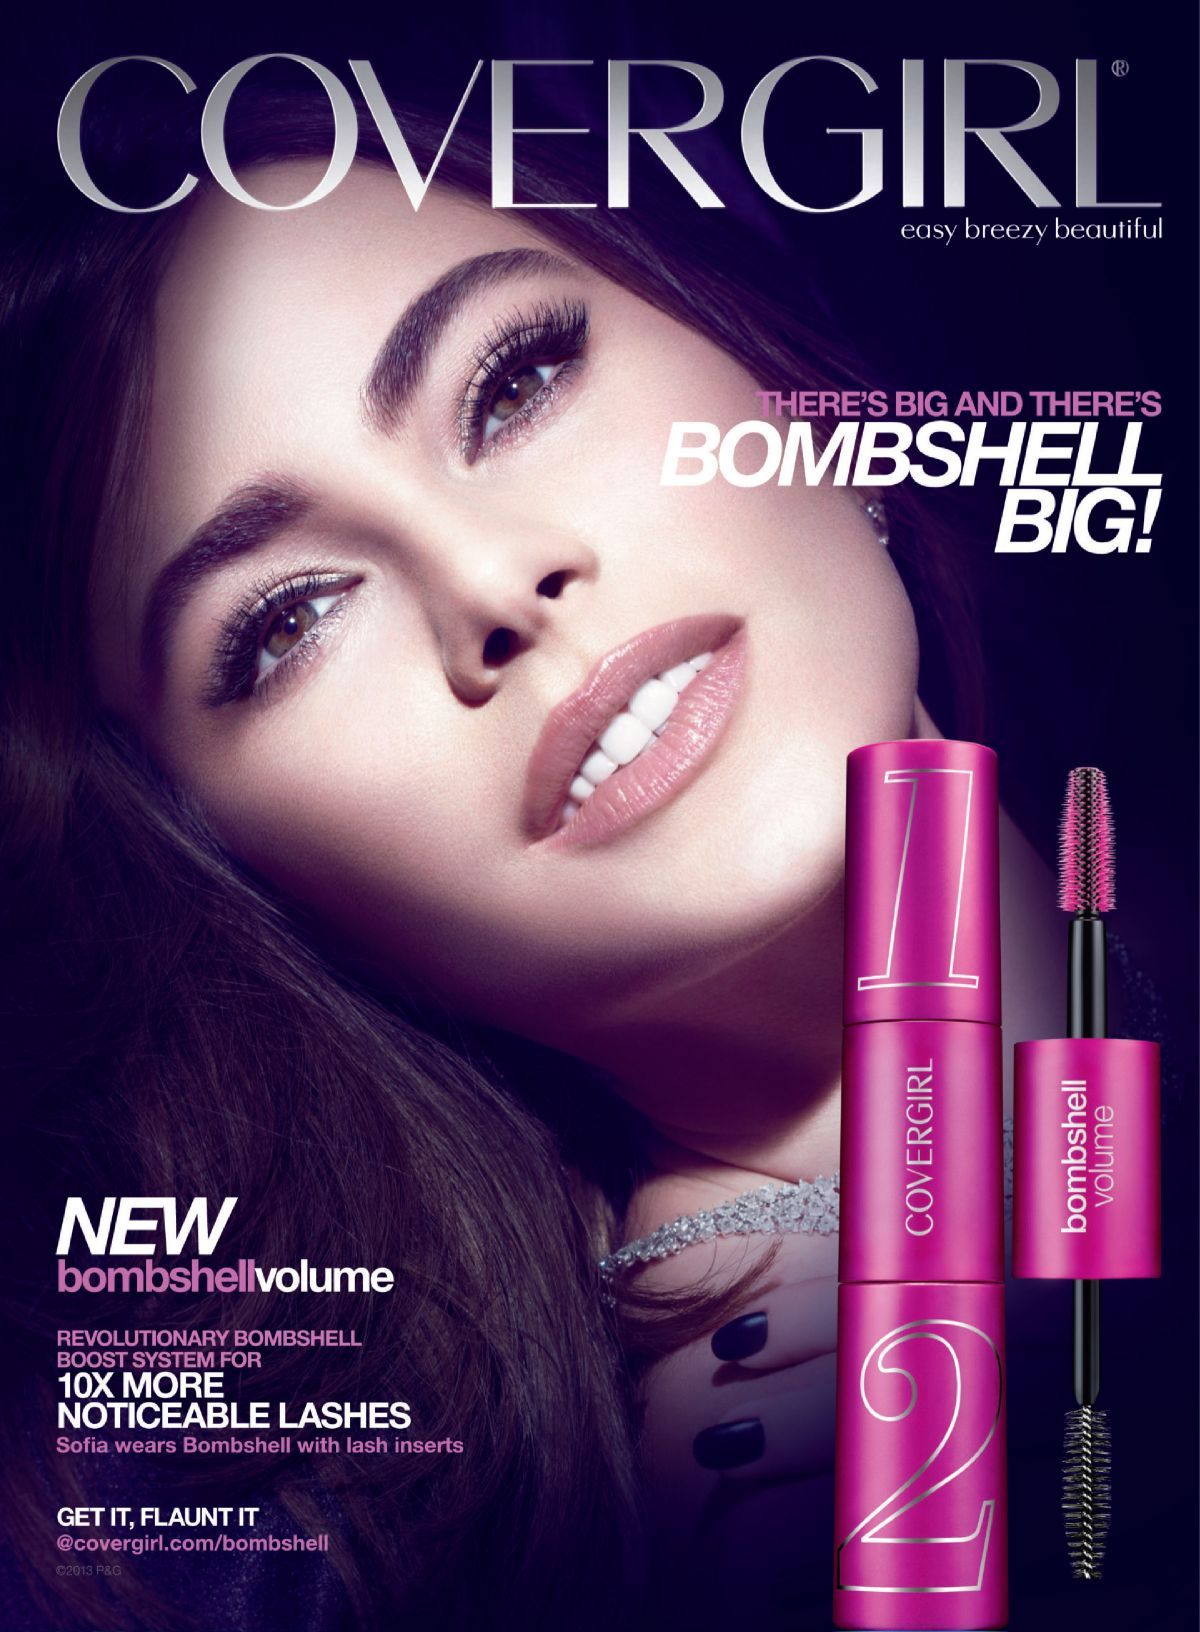 Sofia VergaraCover Girl Ad's Current Cosmetic